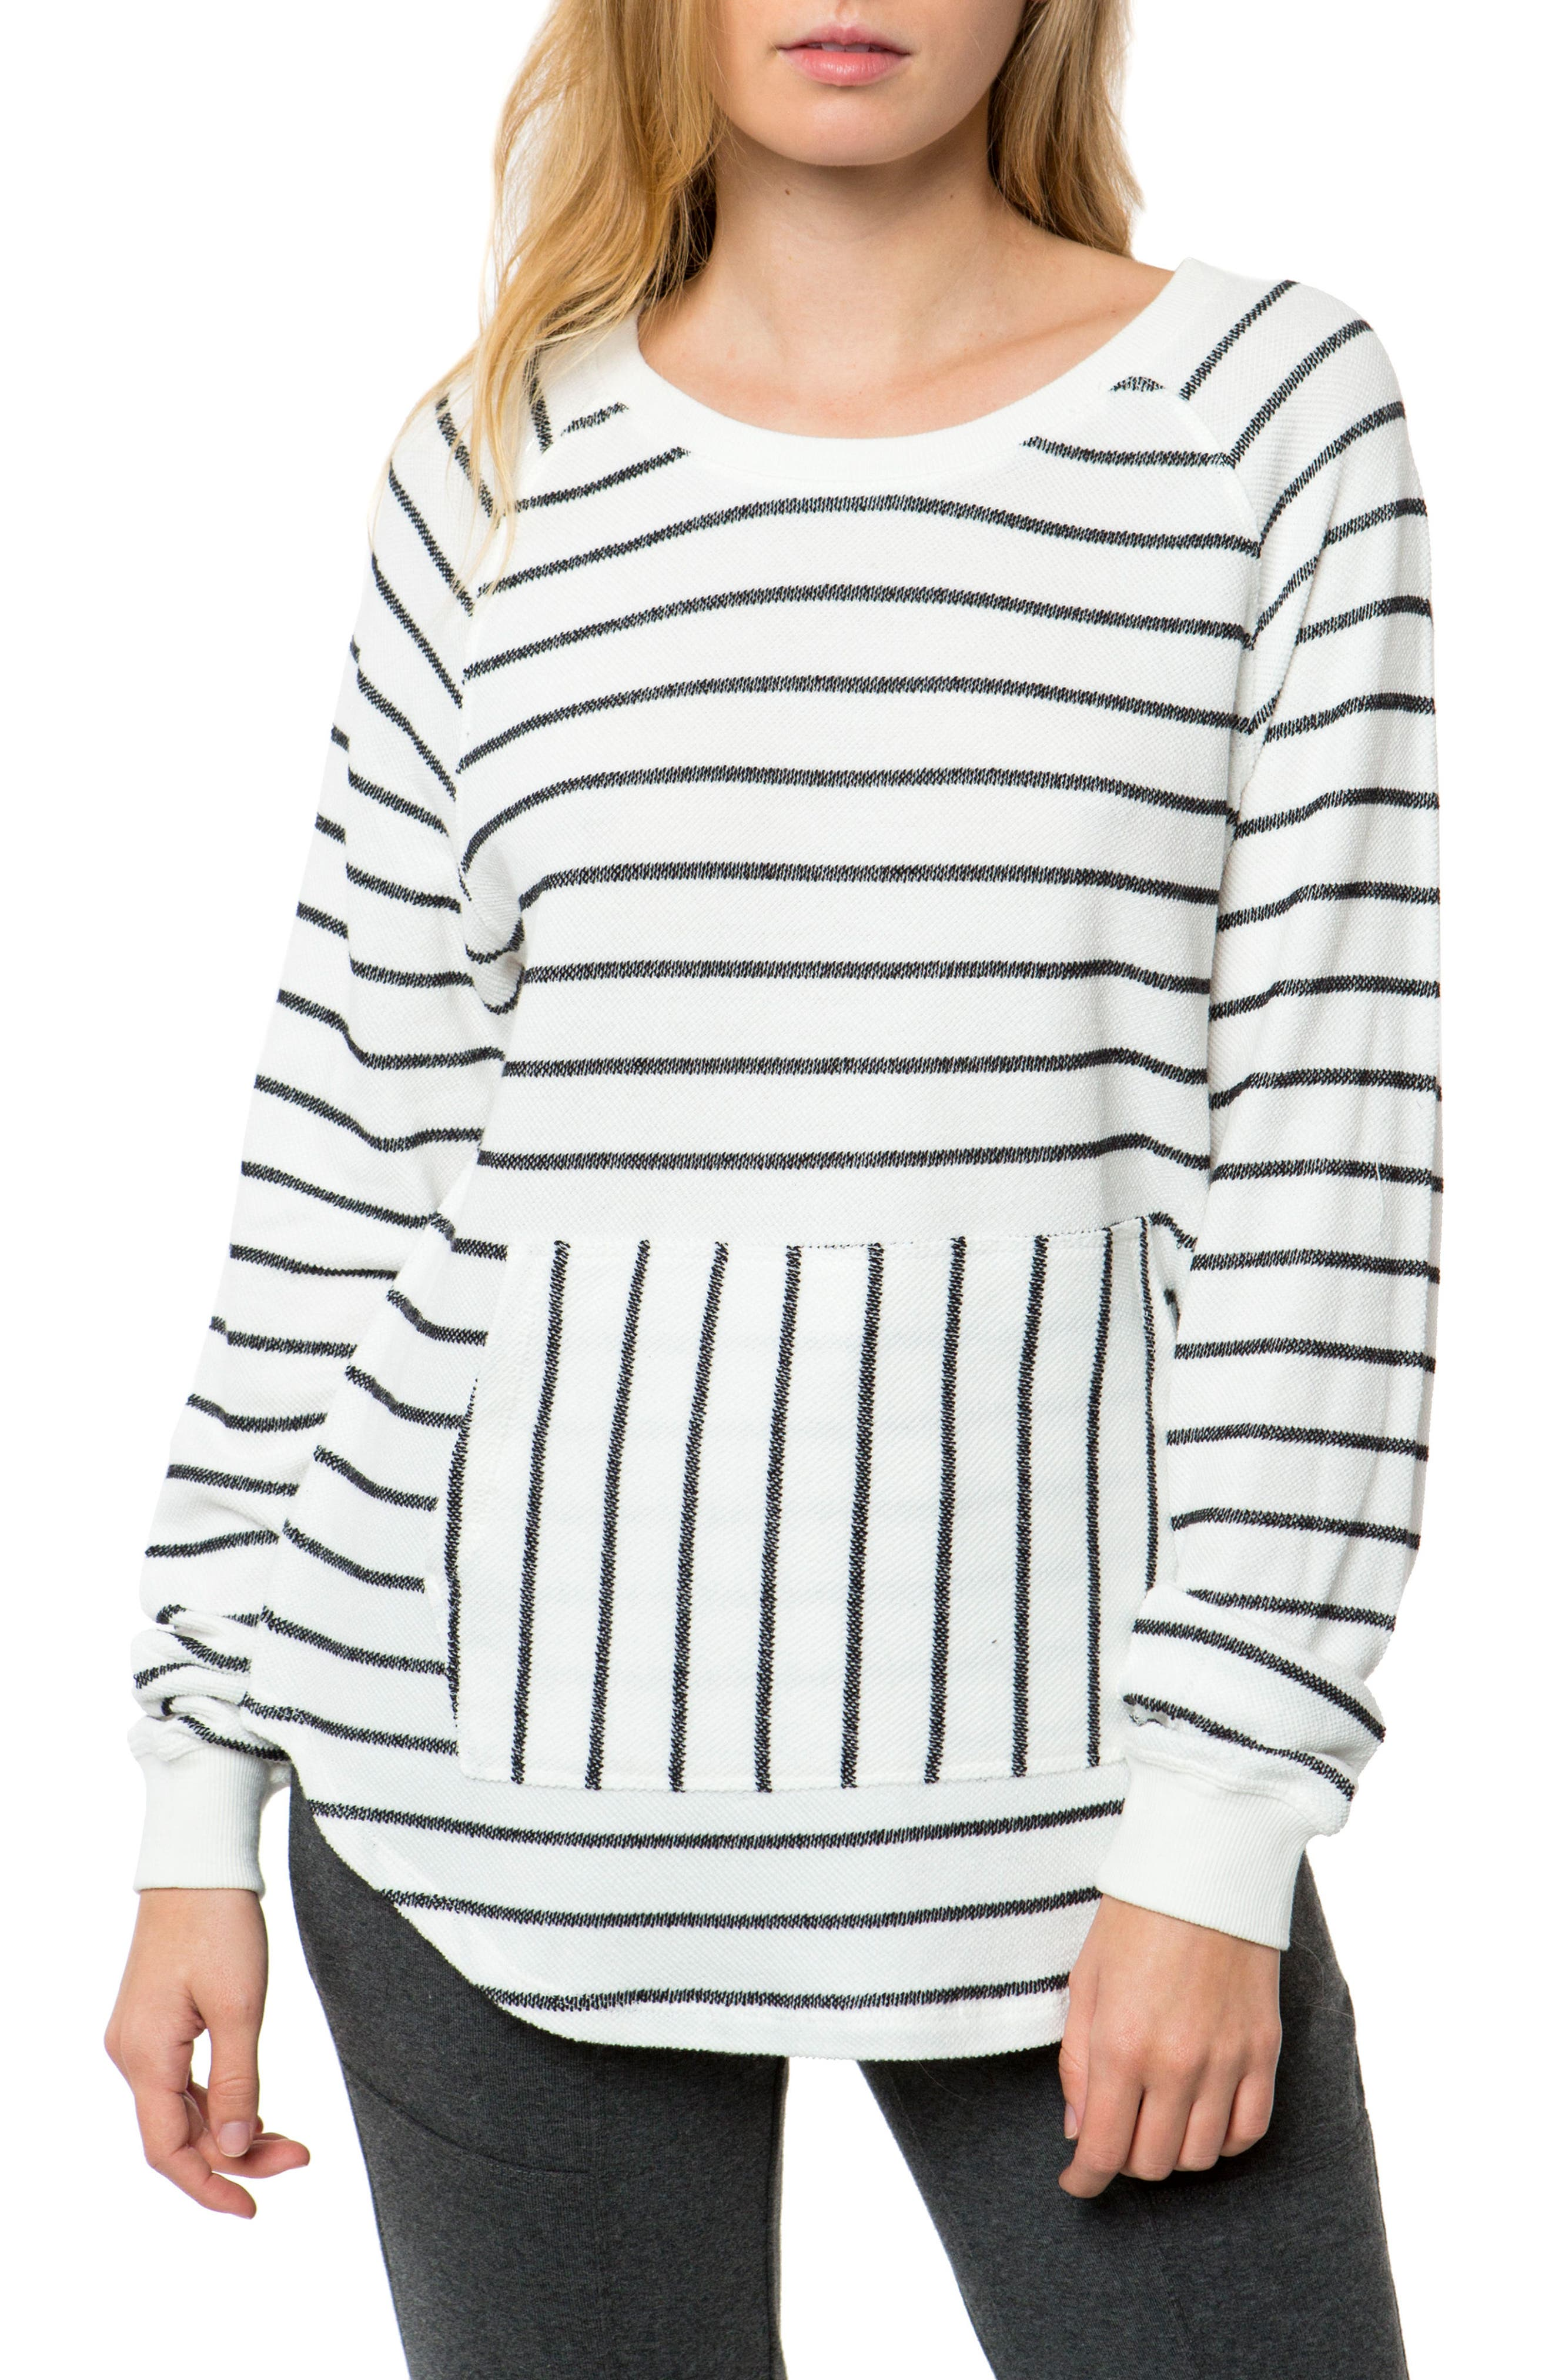 Montauk Pullover Top,                         Main,                         color, Naked